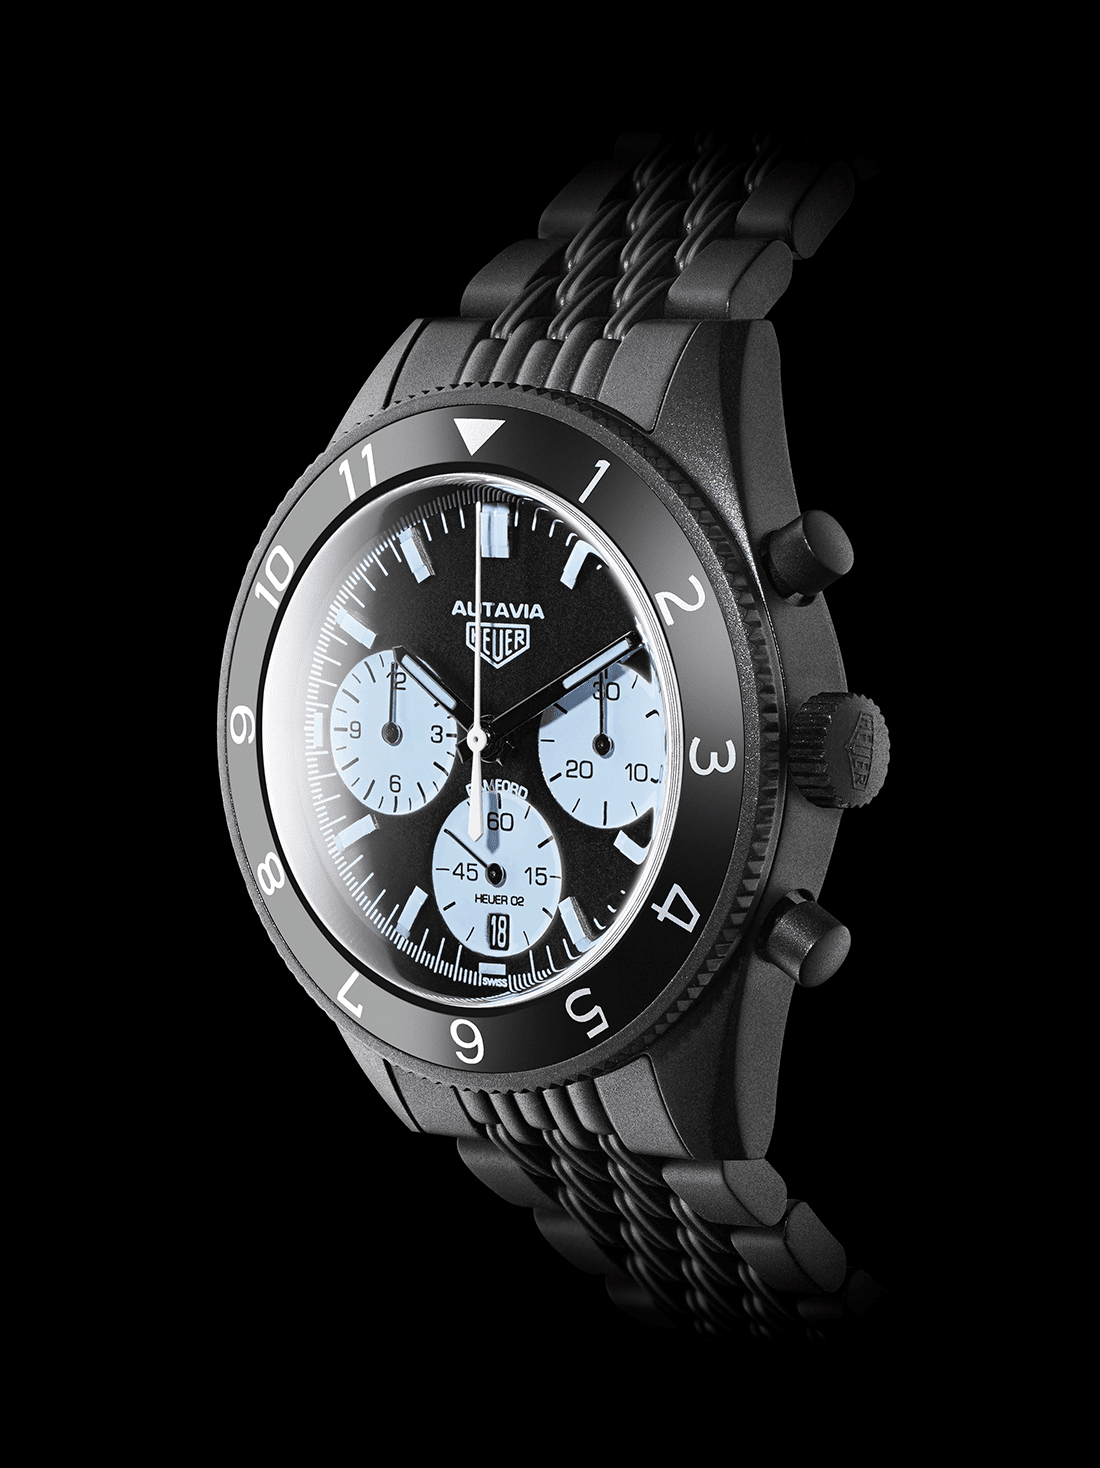 bwd_tag_autavia_42mm_matteblack_aqua_side